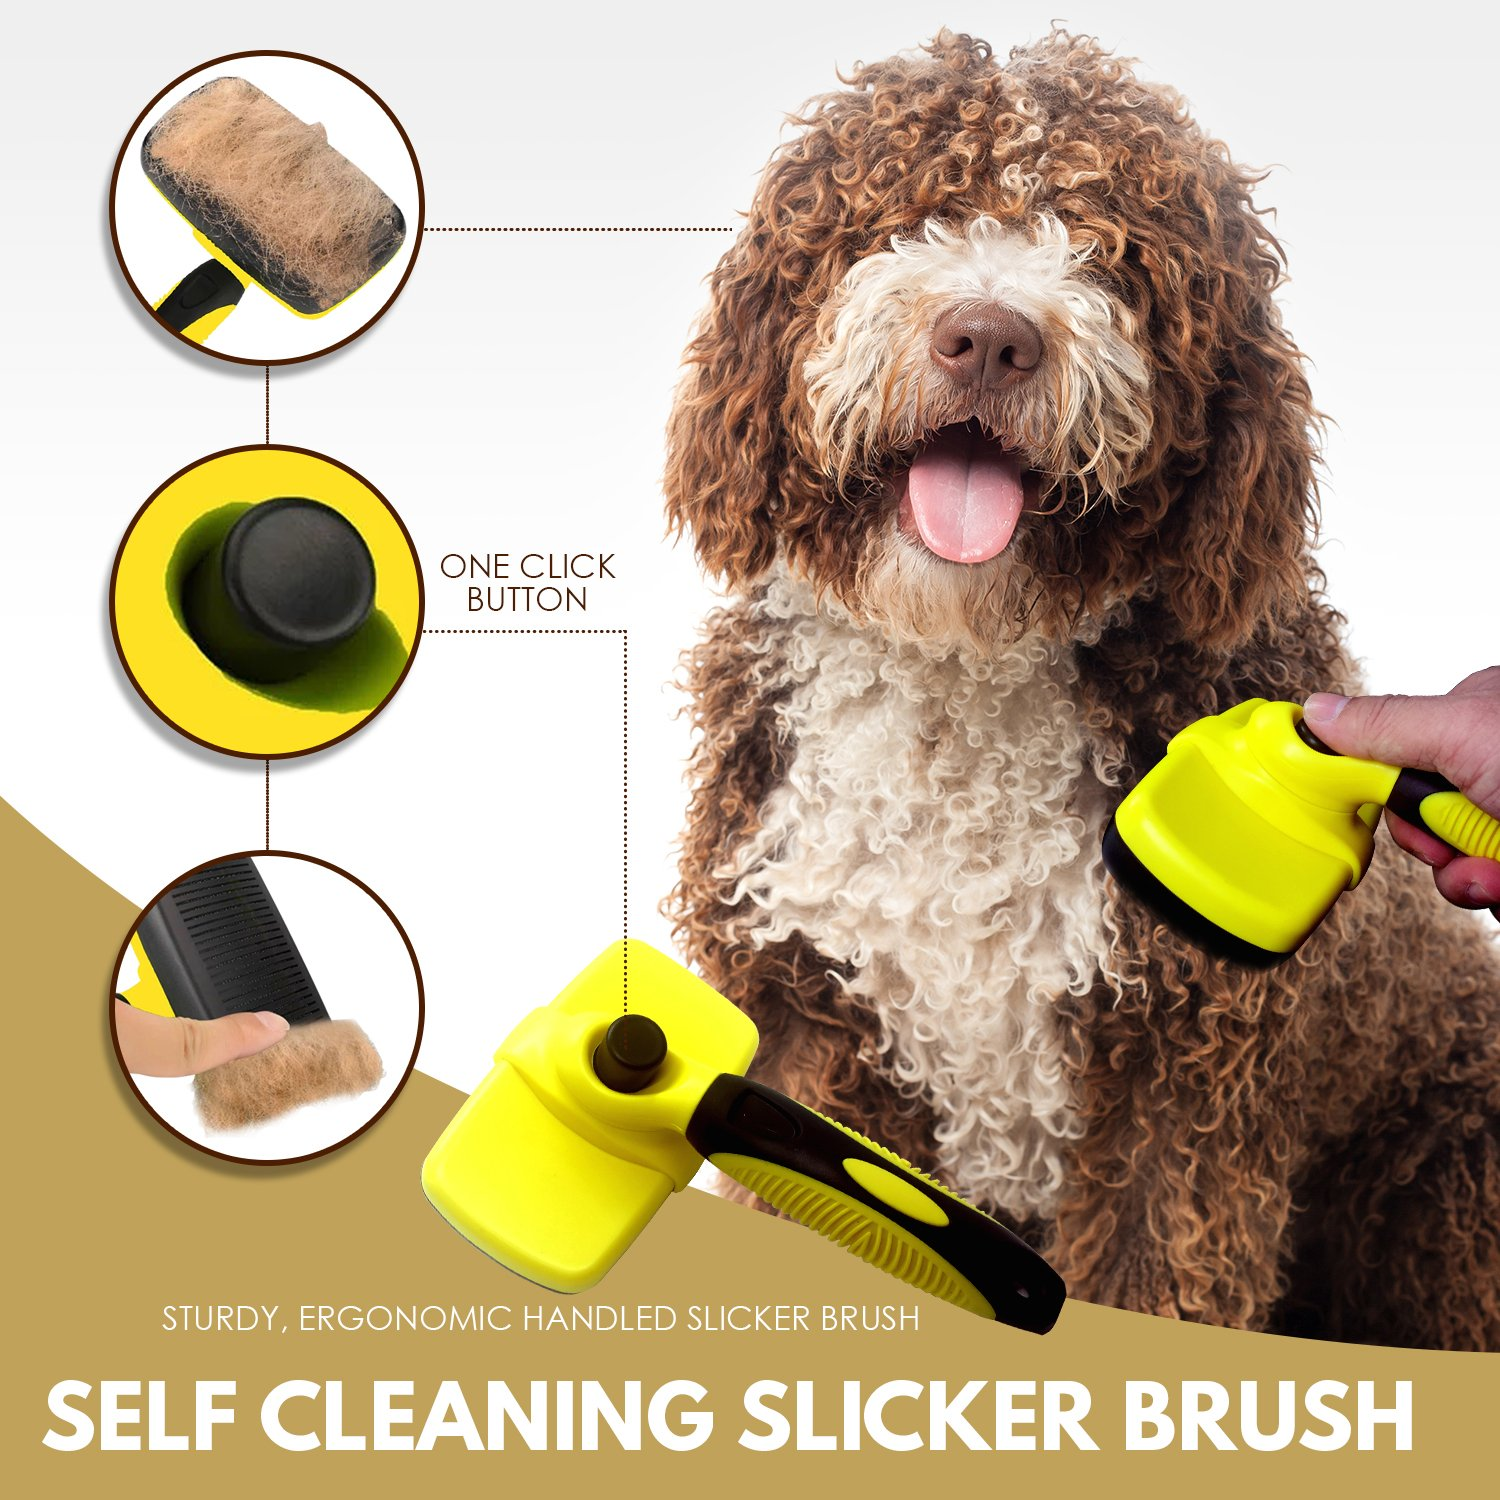 3 in 1 Pet Grooming Set,Self Cleaning Slicker Brush,Pet Comb and 1 Pair Pet grooming Gloves-Right & Left Hands,Anti Shedding Pet Hair Remover for Dogs & Cats,Deshedding Fur,Long & Short Hair,Undercoat by SOUL MUTT VAVA (Image #4)